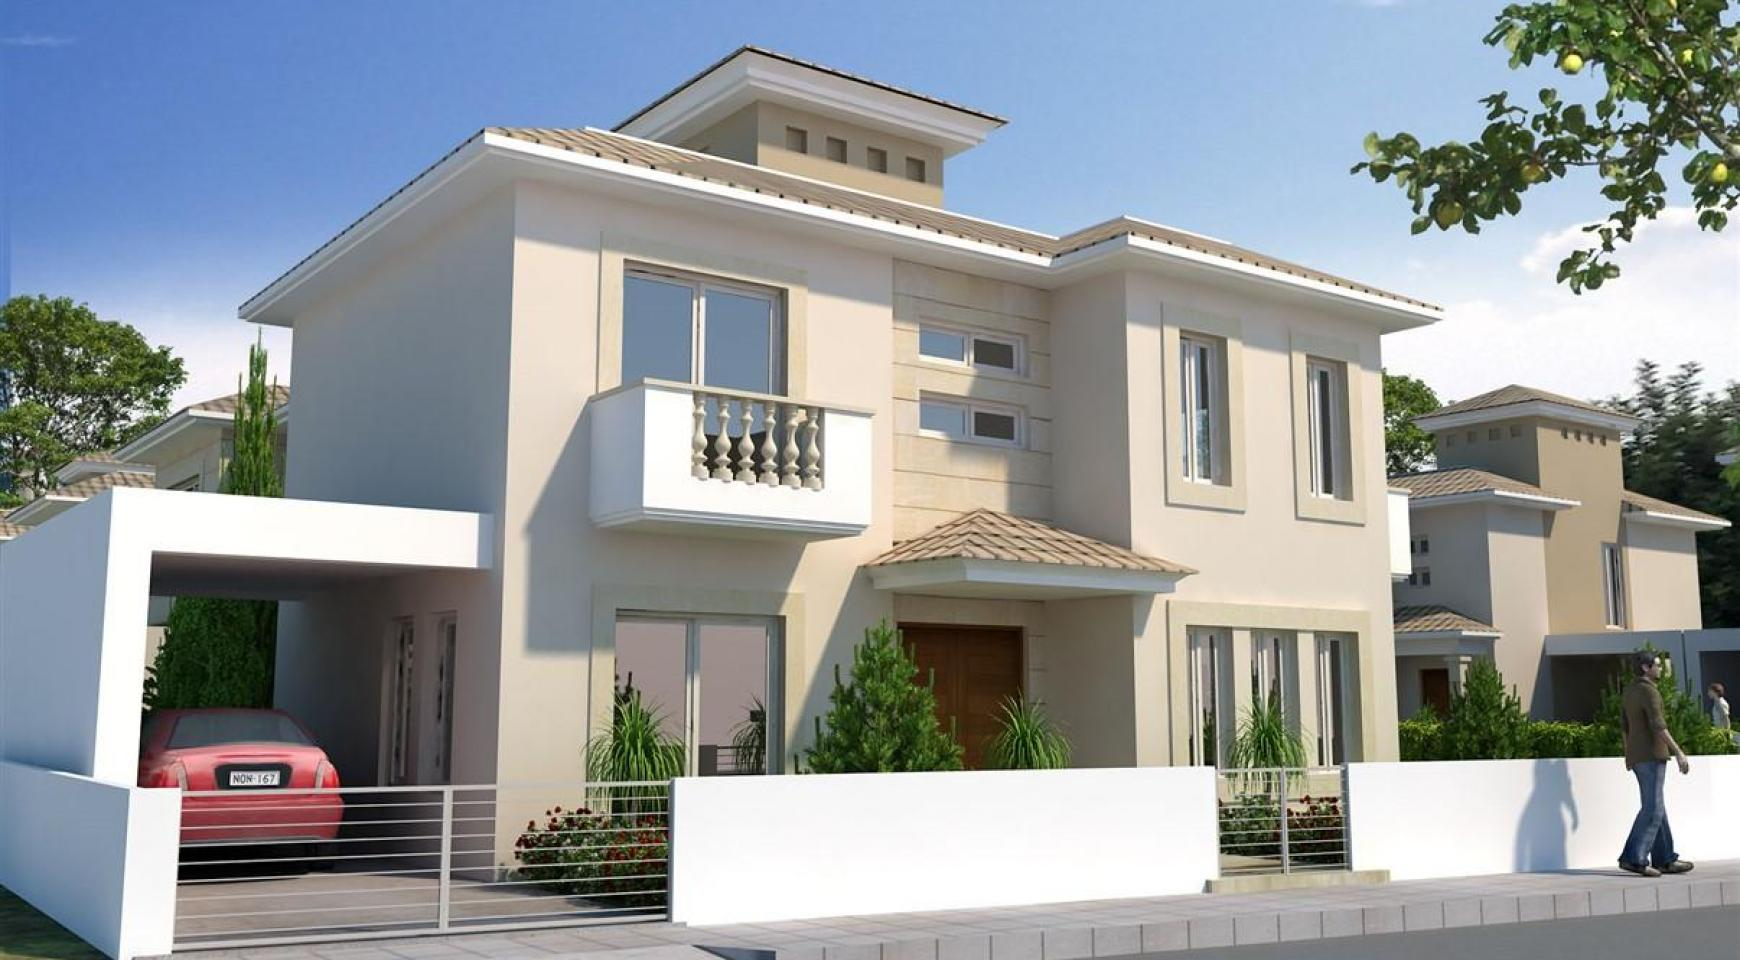 3 Bedroom Villa in a New Project - 11